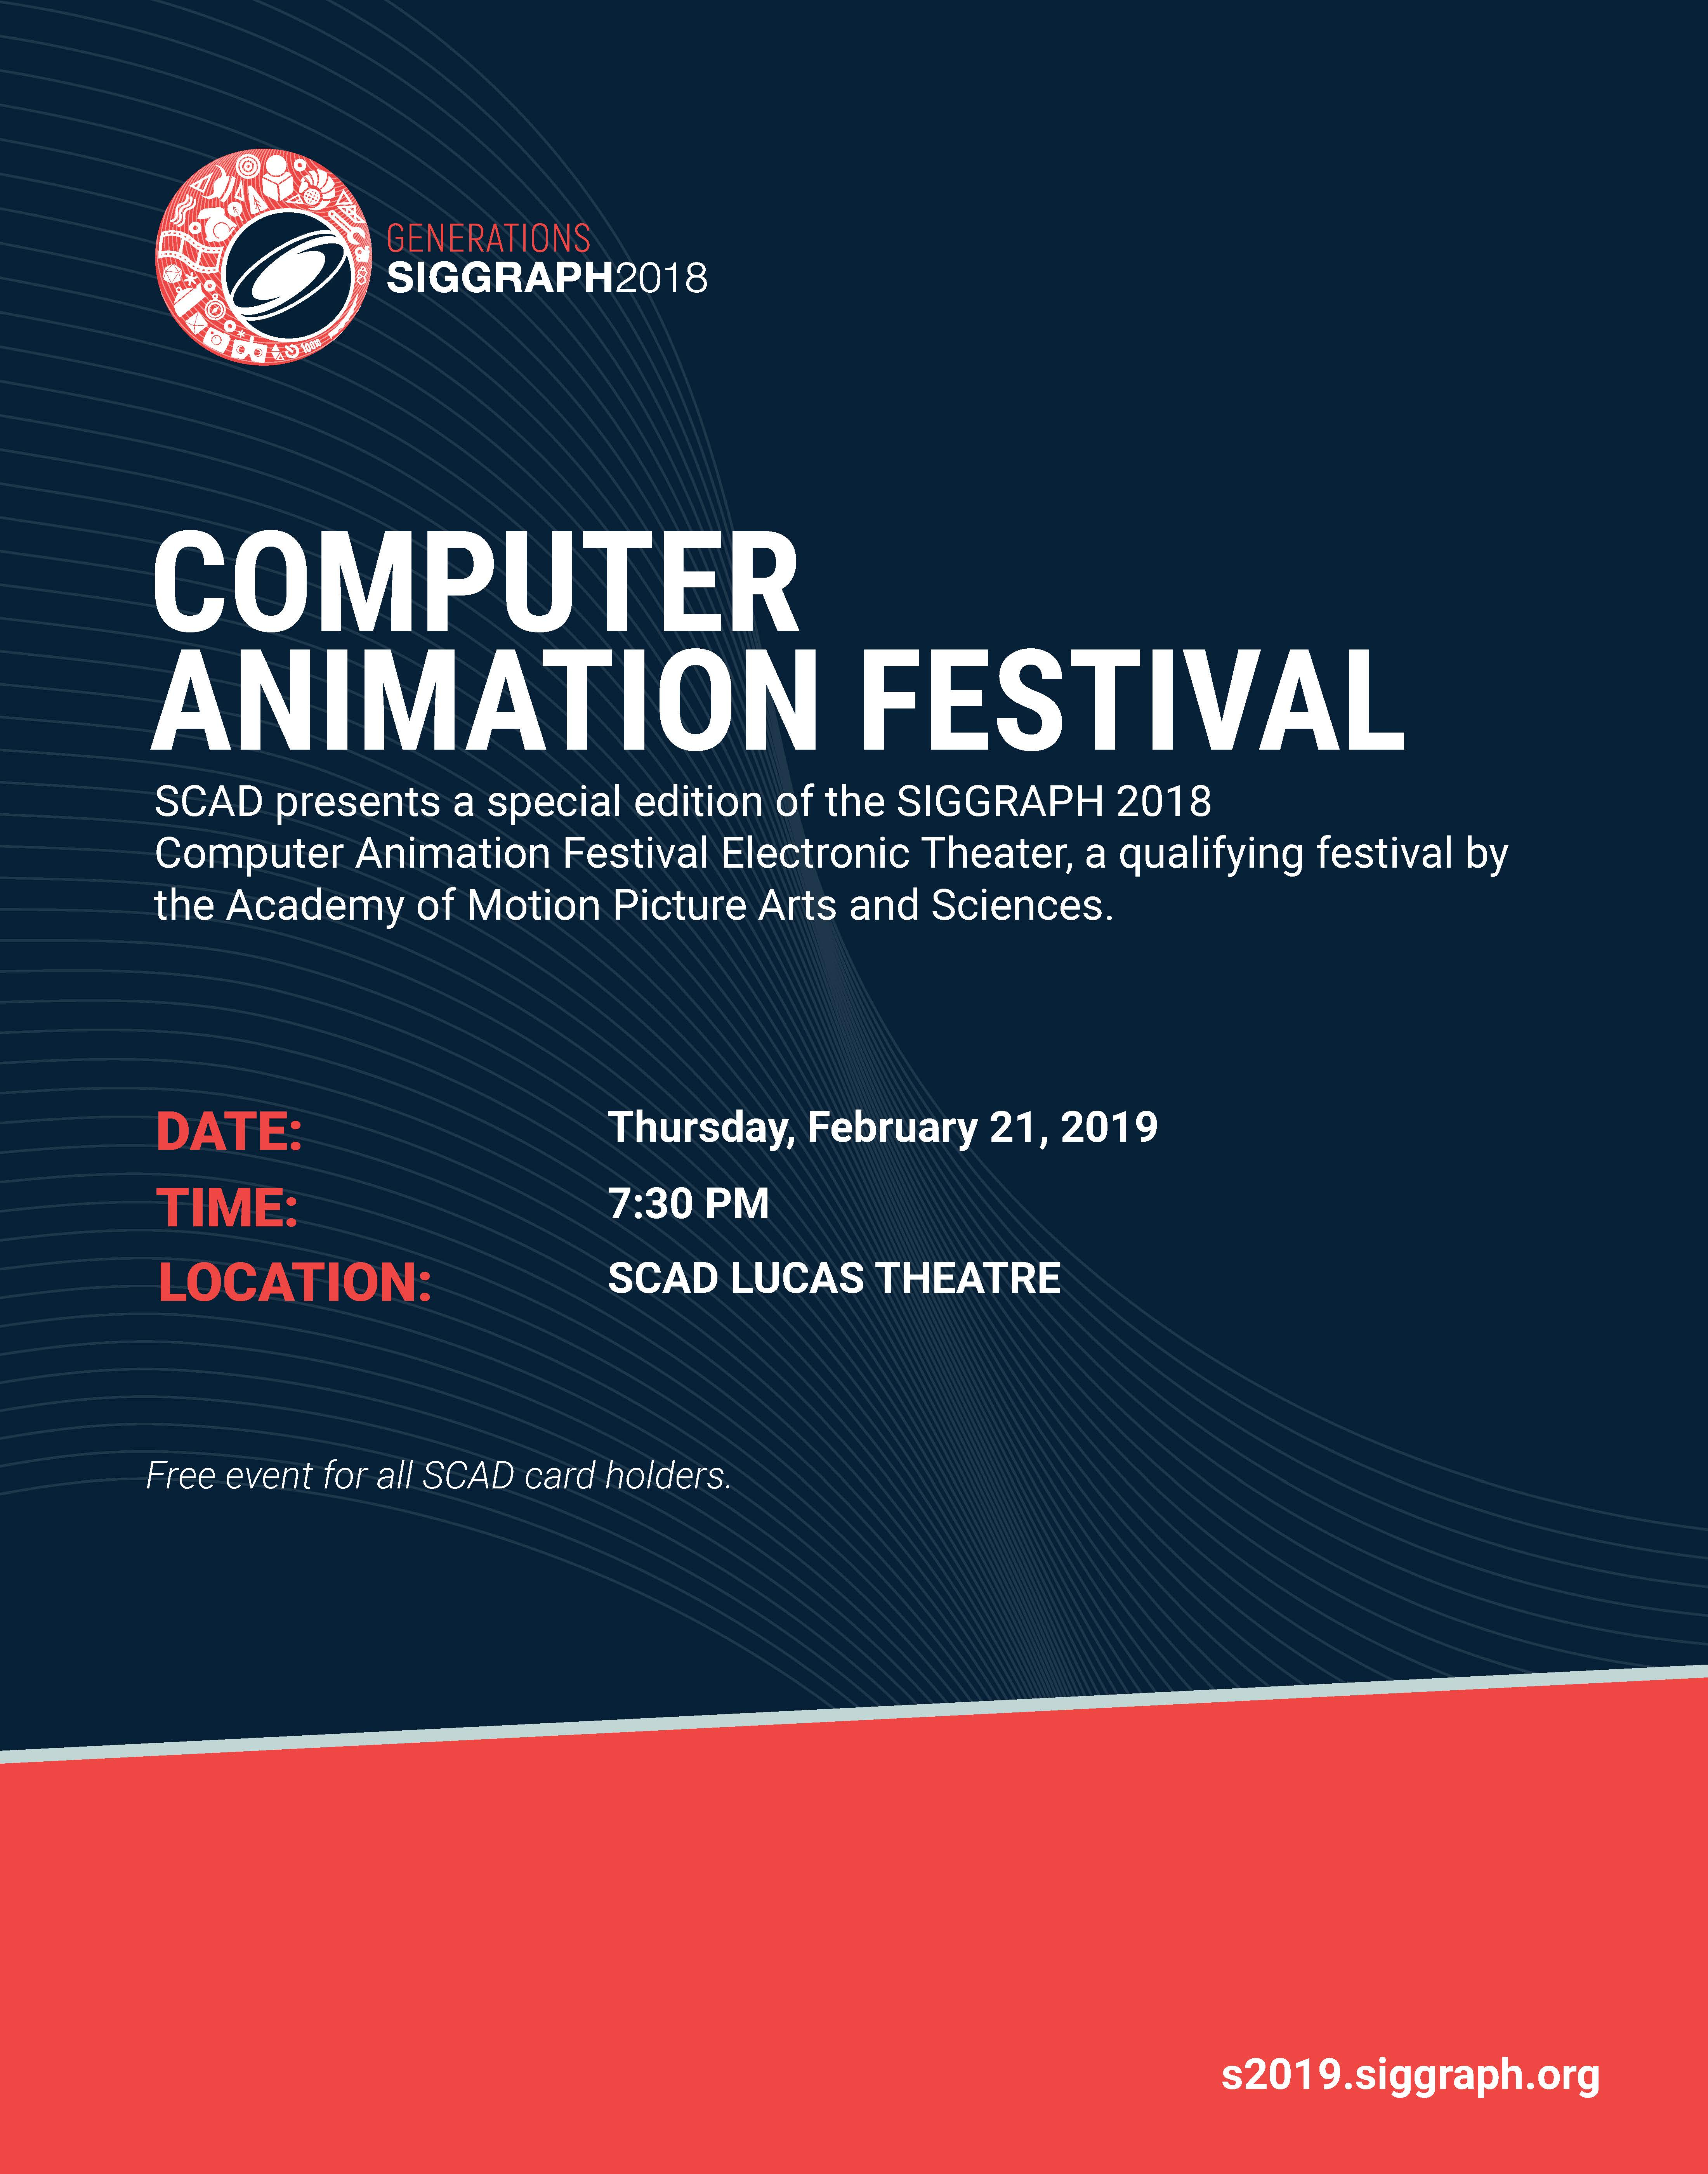 Computer Animation Festival